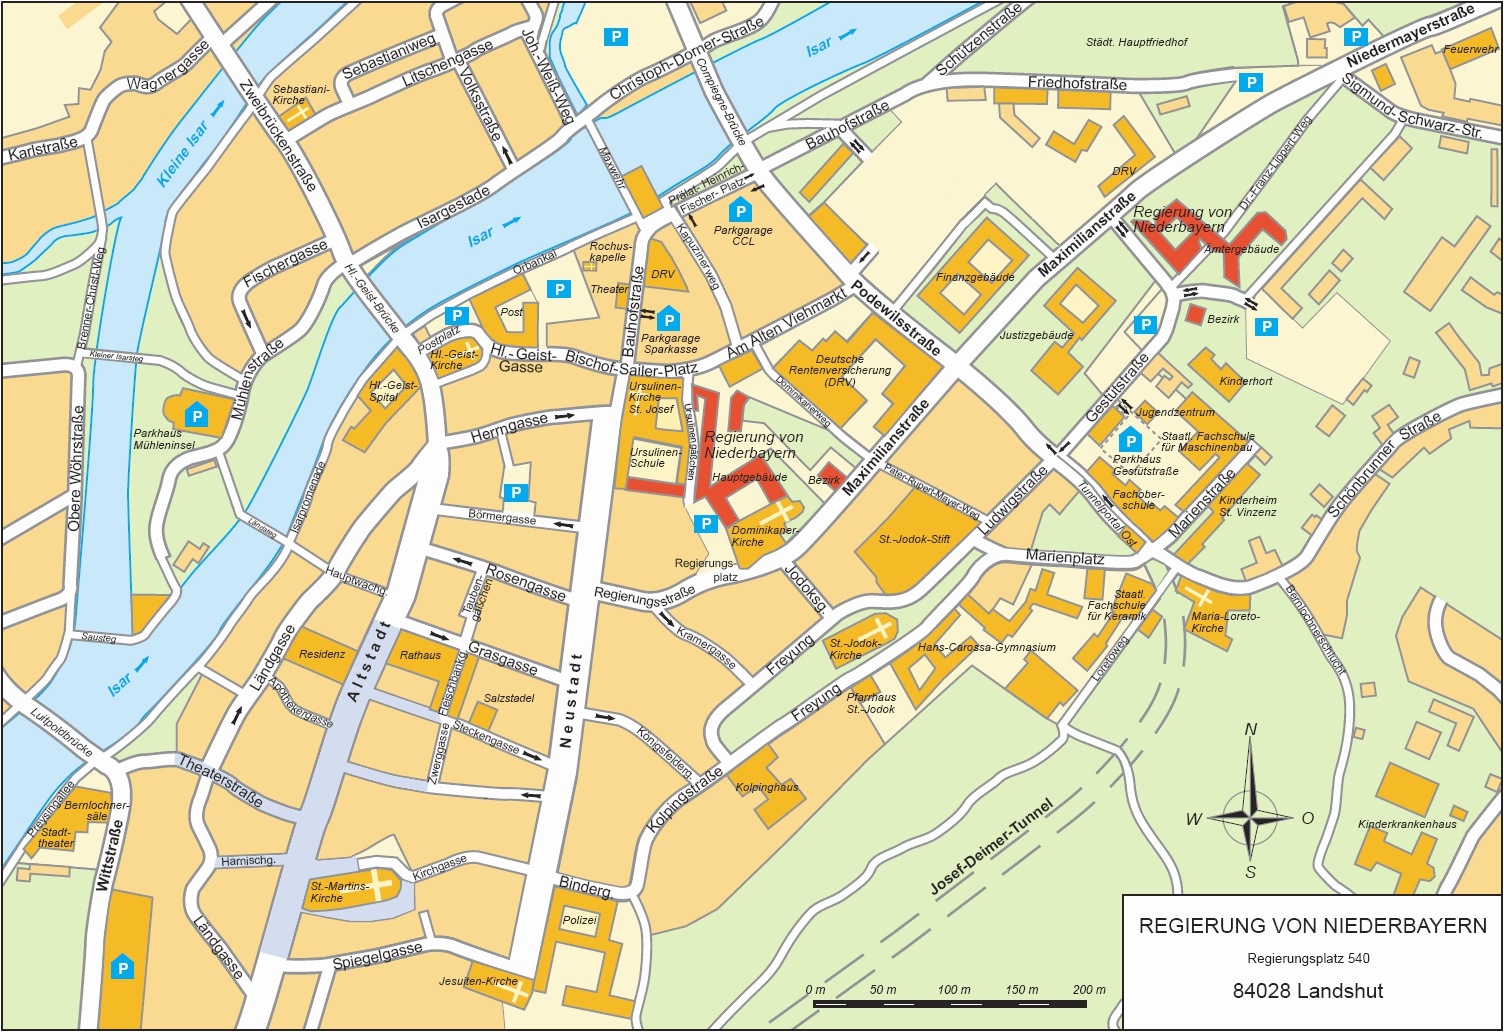 Large Landshut Maps For Free Download And Print High